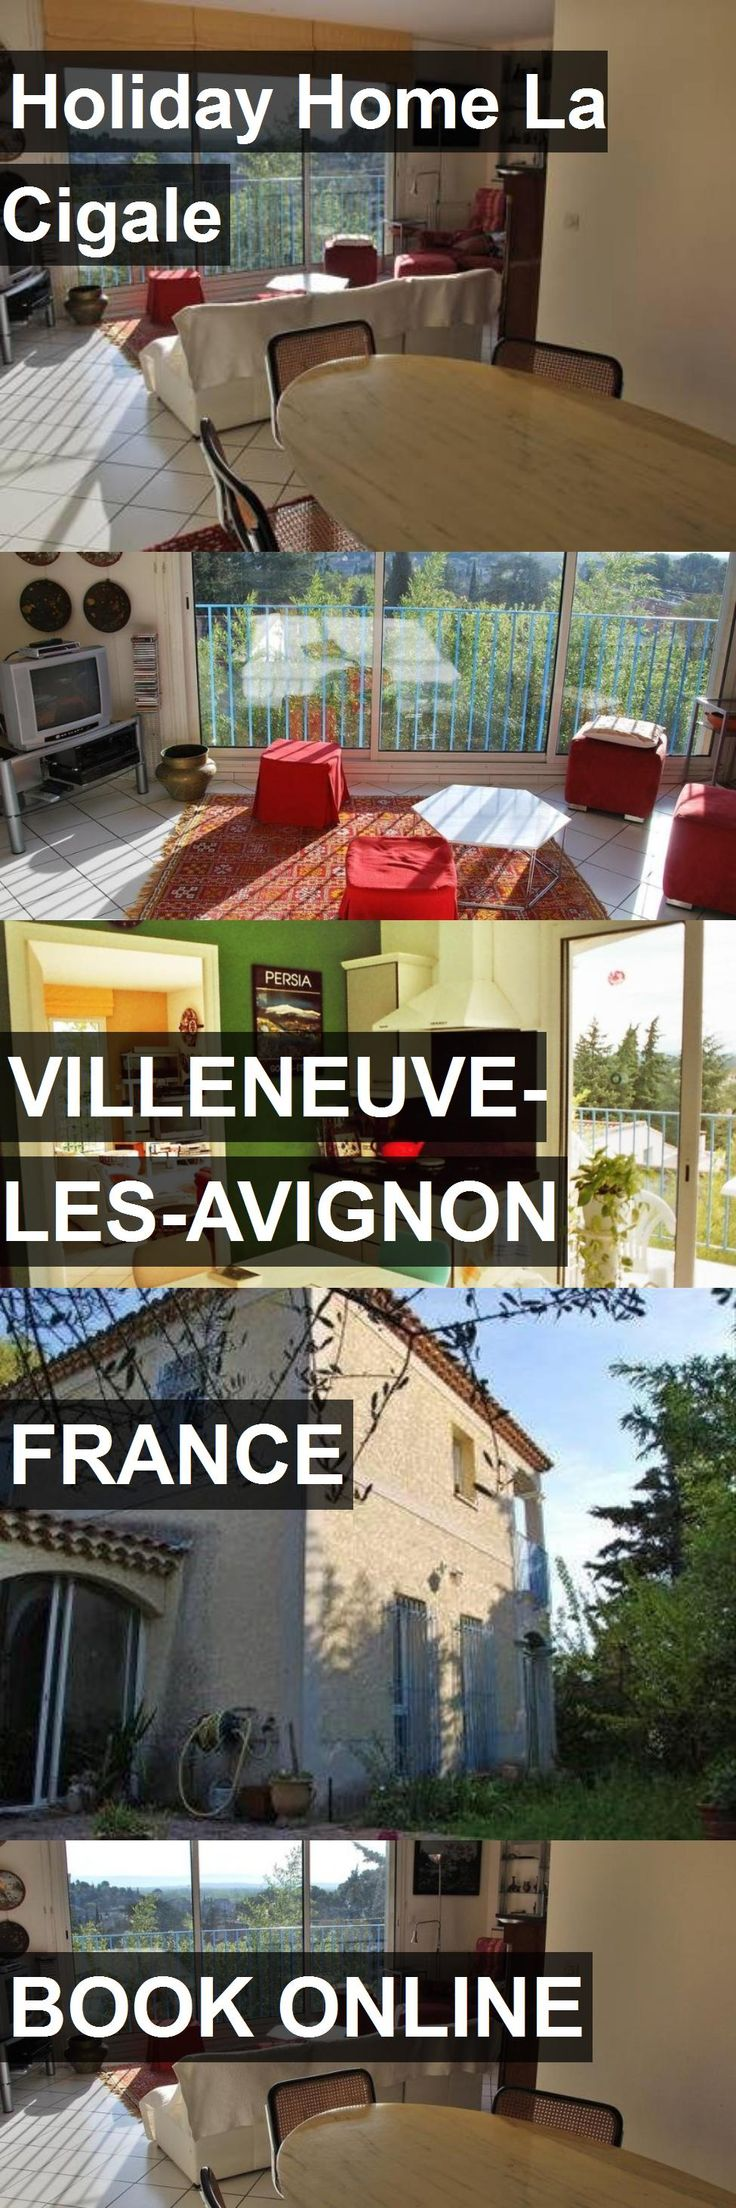 Hotel Holiday Home La Cigale in Villeneuve-les-Avignon, France. For more information, photos, reviews and best prices please follow the link. #France #Villeneuve-les-Avignon #travel #vacation #hotel